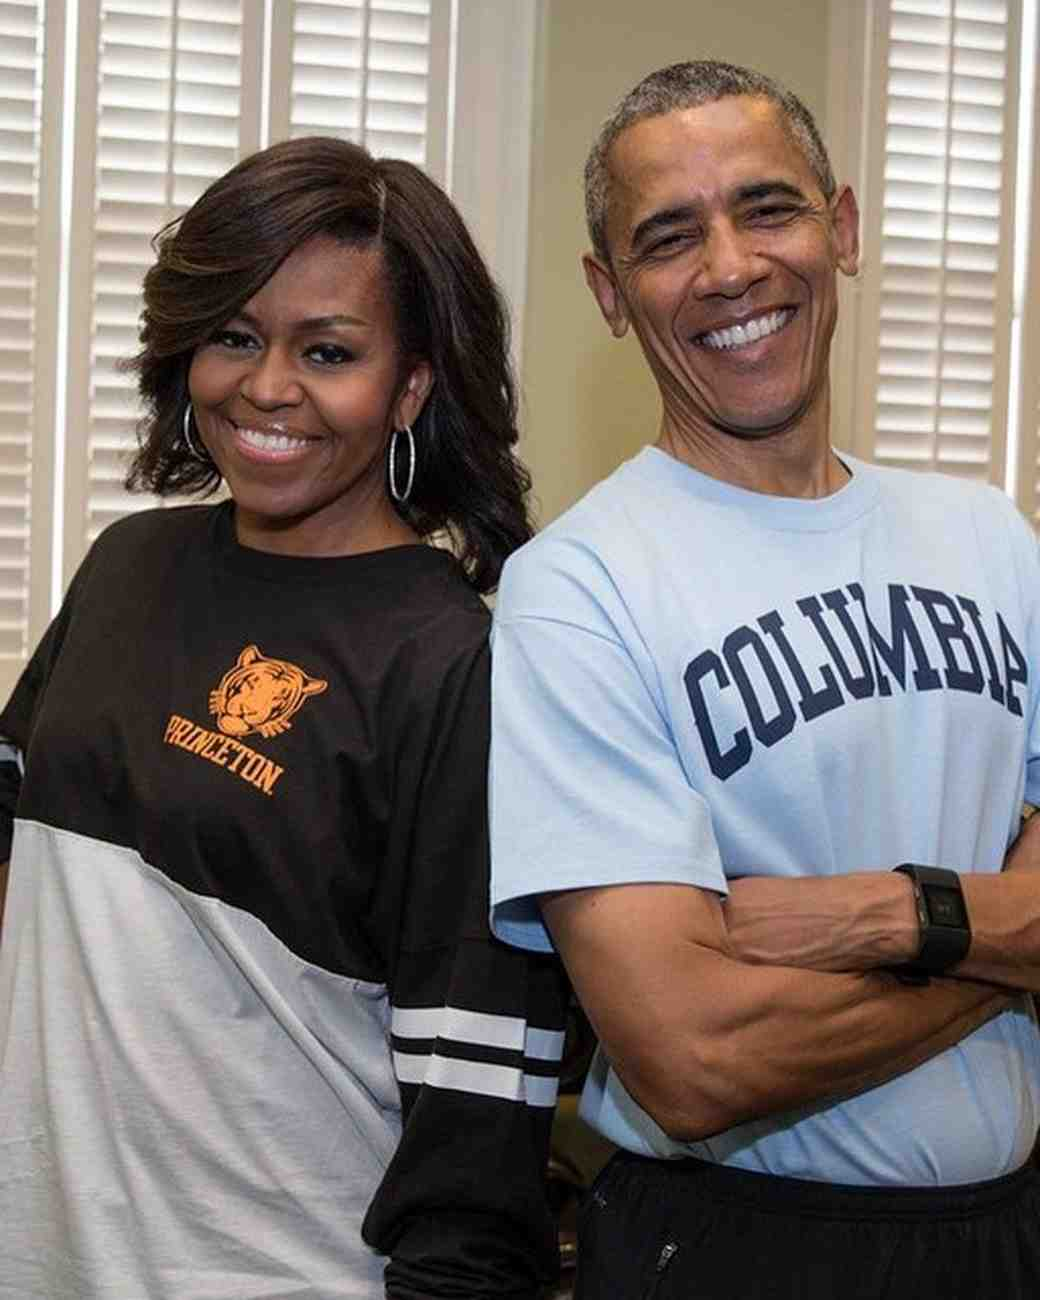 Michelle and Barack Obama in College Shirts